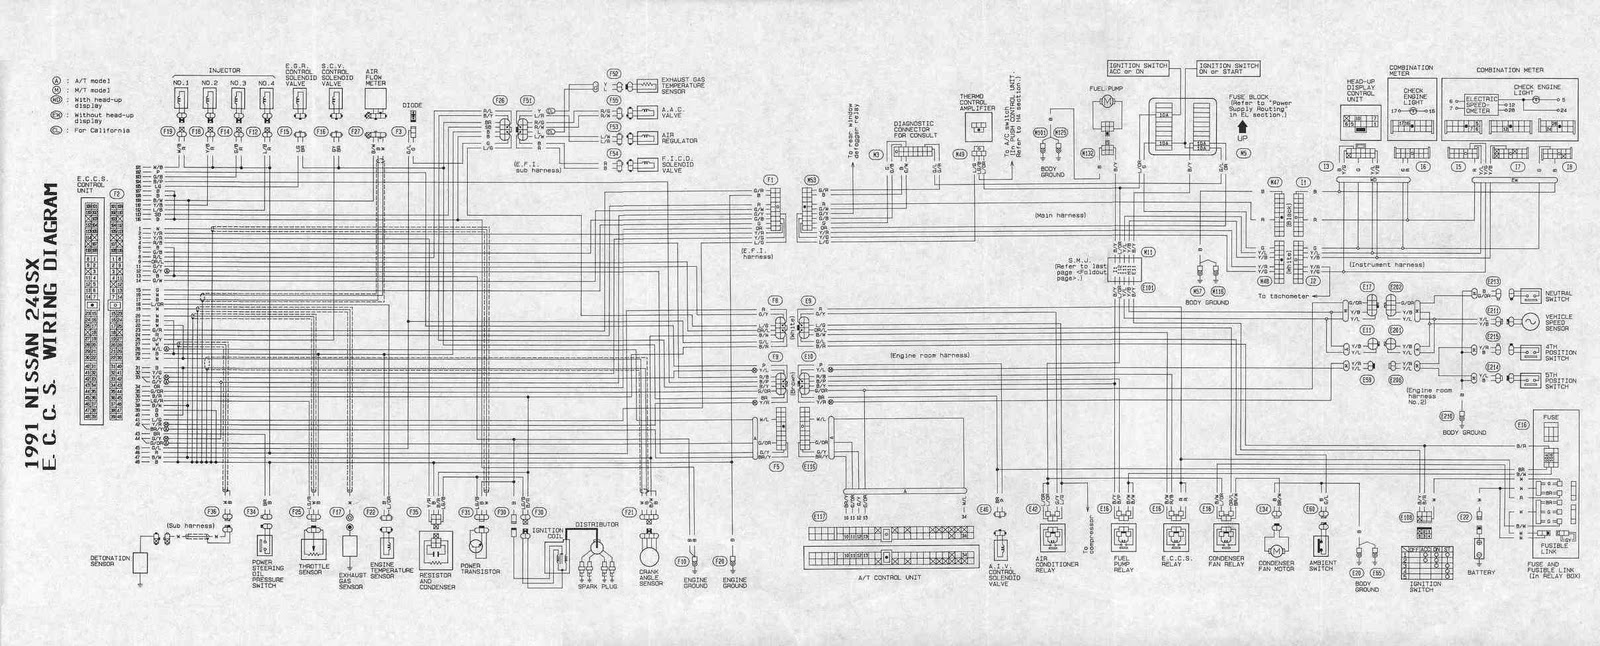 Nissan 240SX 1991 ECCS Wiring Diagram | All about Wiring